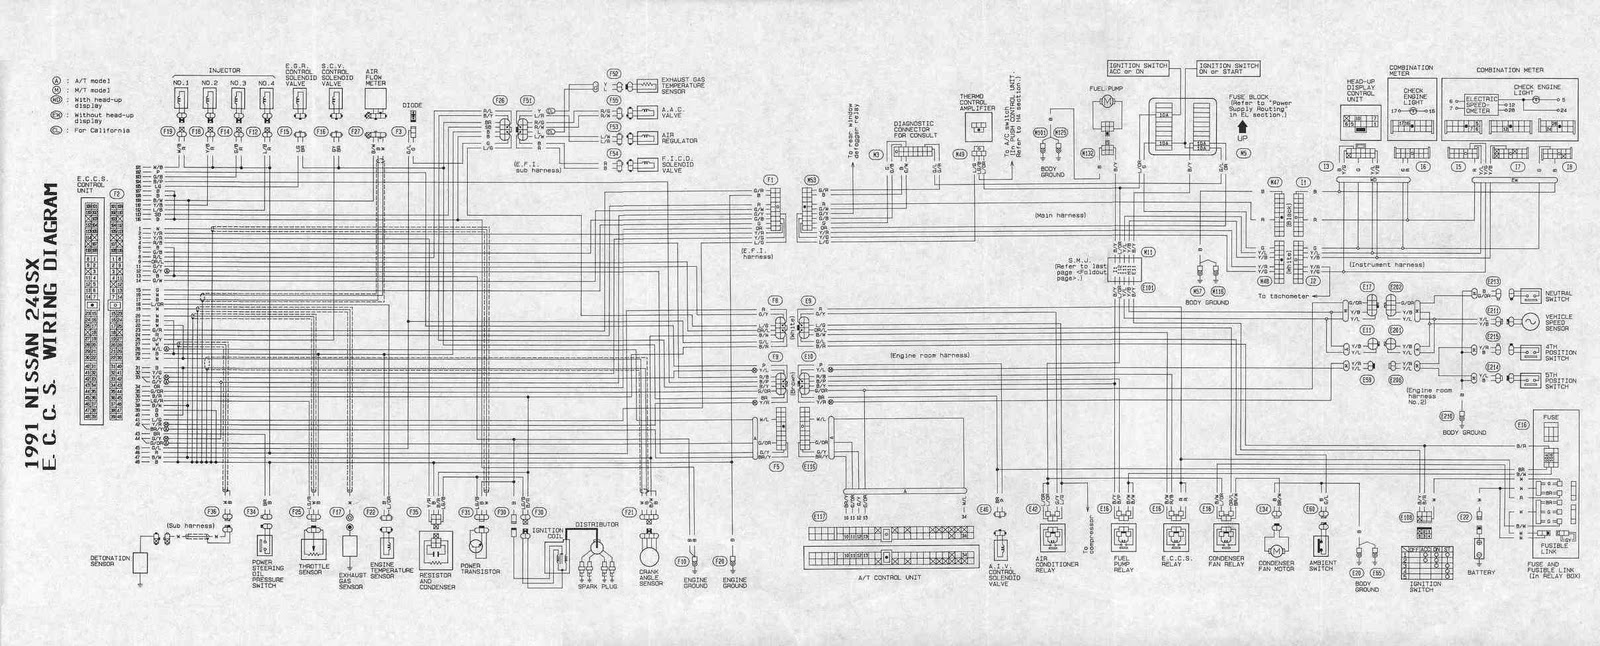 Nissan 240SX 1991 ECCS Wiring Diagram | All about Wiring